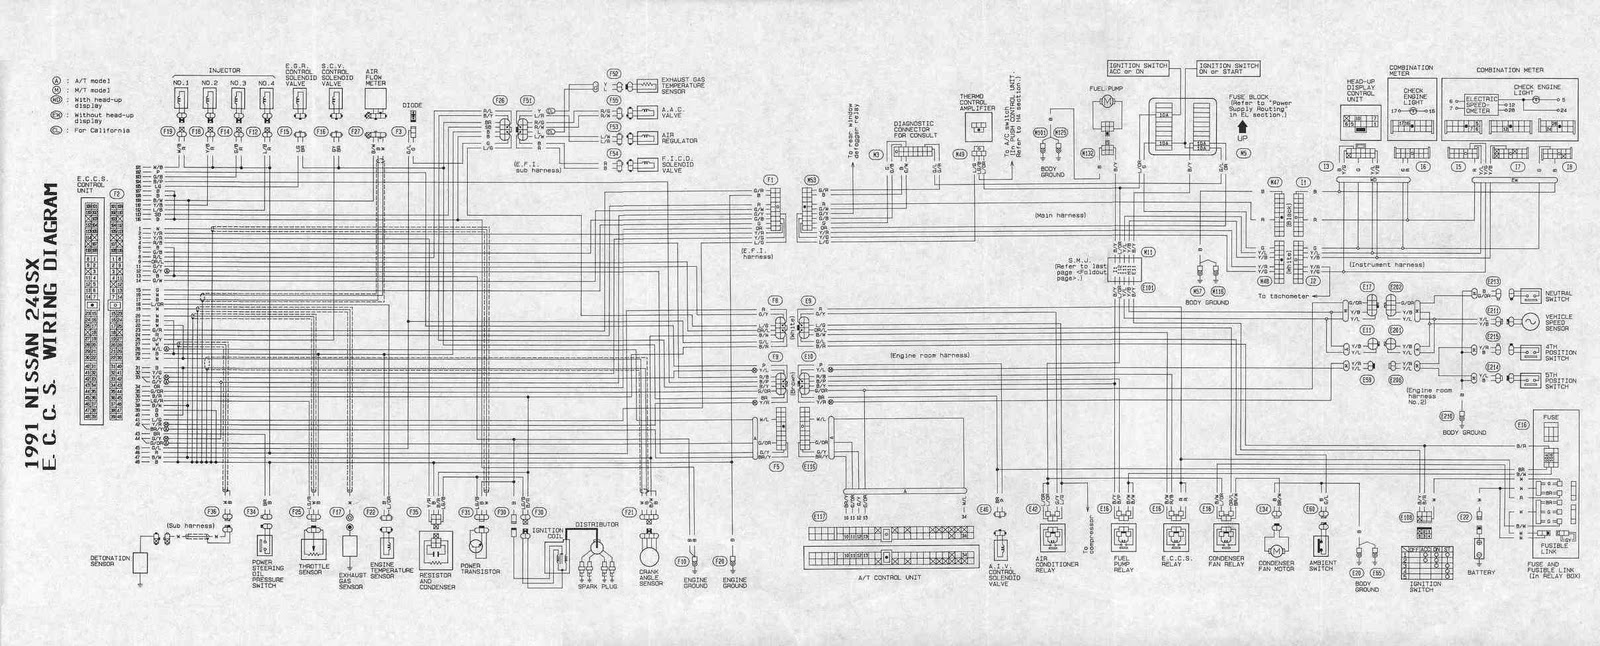 Nissan 240SX 1991 ECCS Wiring Diagram | All about Wiring